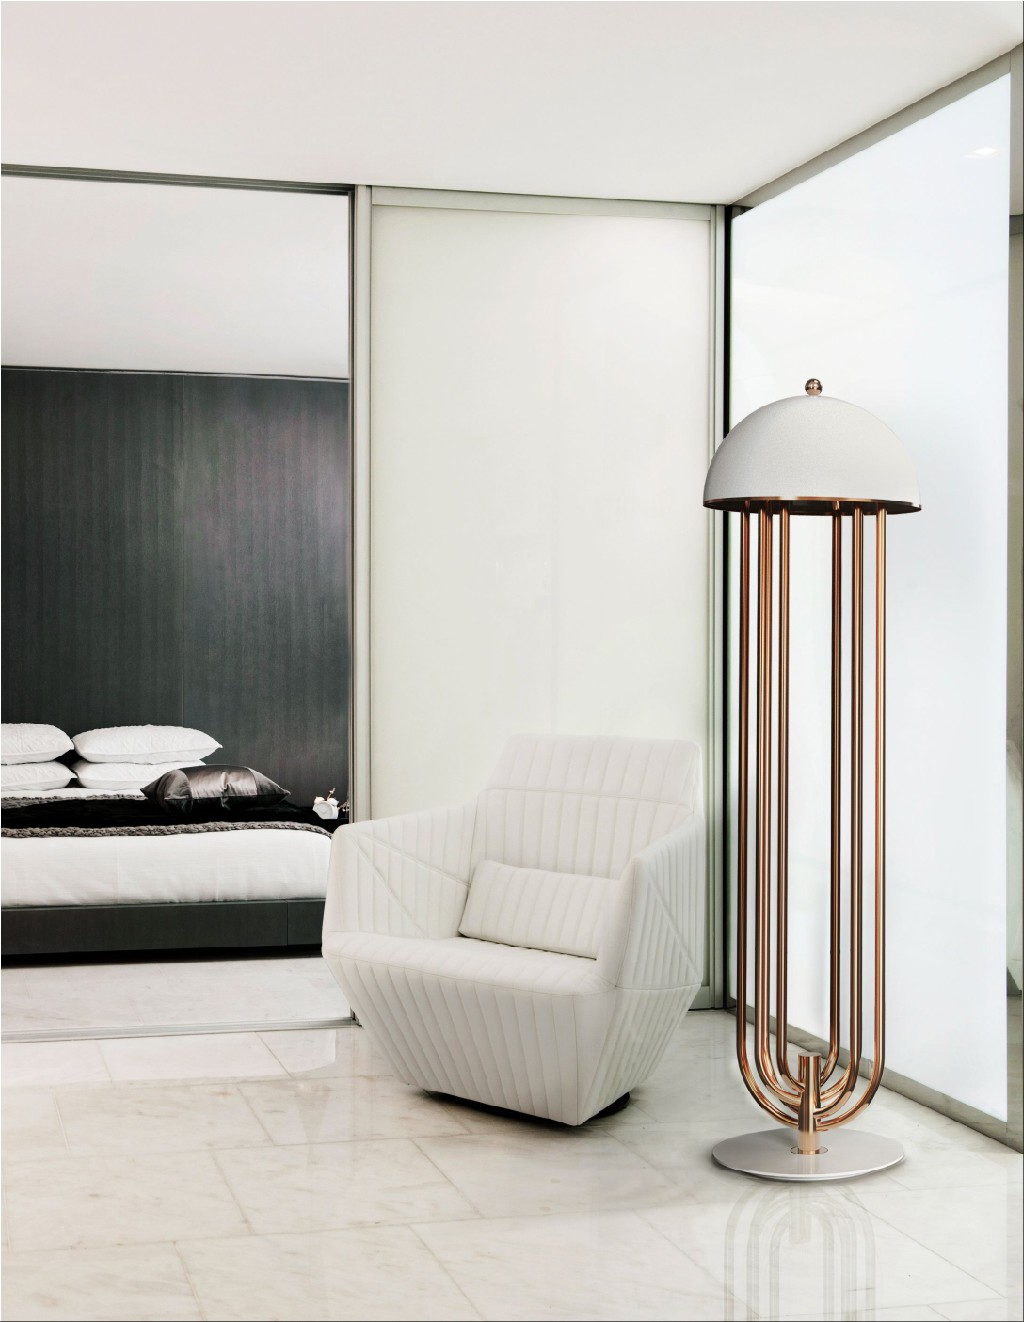 Contemporary Floor Lamp Design Ideas That You Will Love contemporary floor lamp design ideas Contemporary Floor Lamp Design Ideas That You Will Love Contemporary Lighting Ideas That You Will Love4